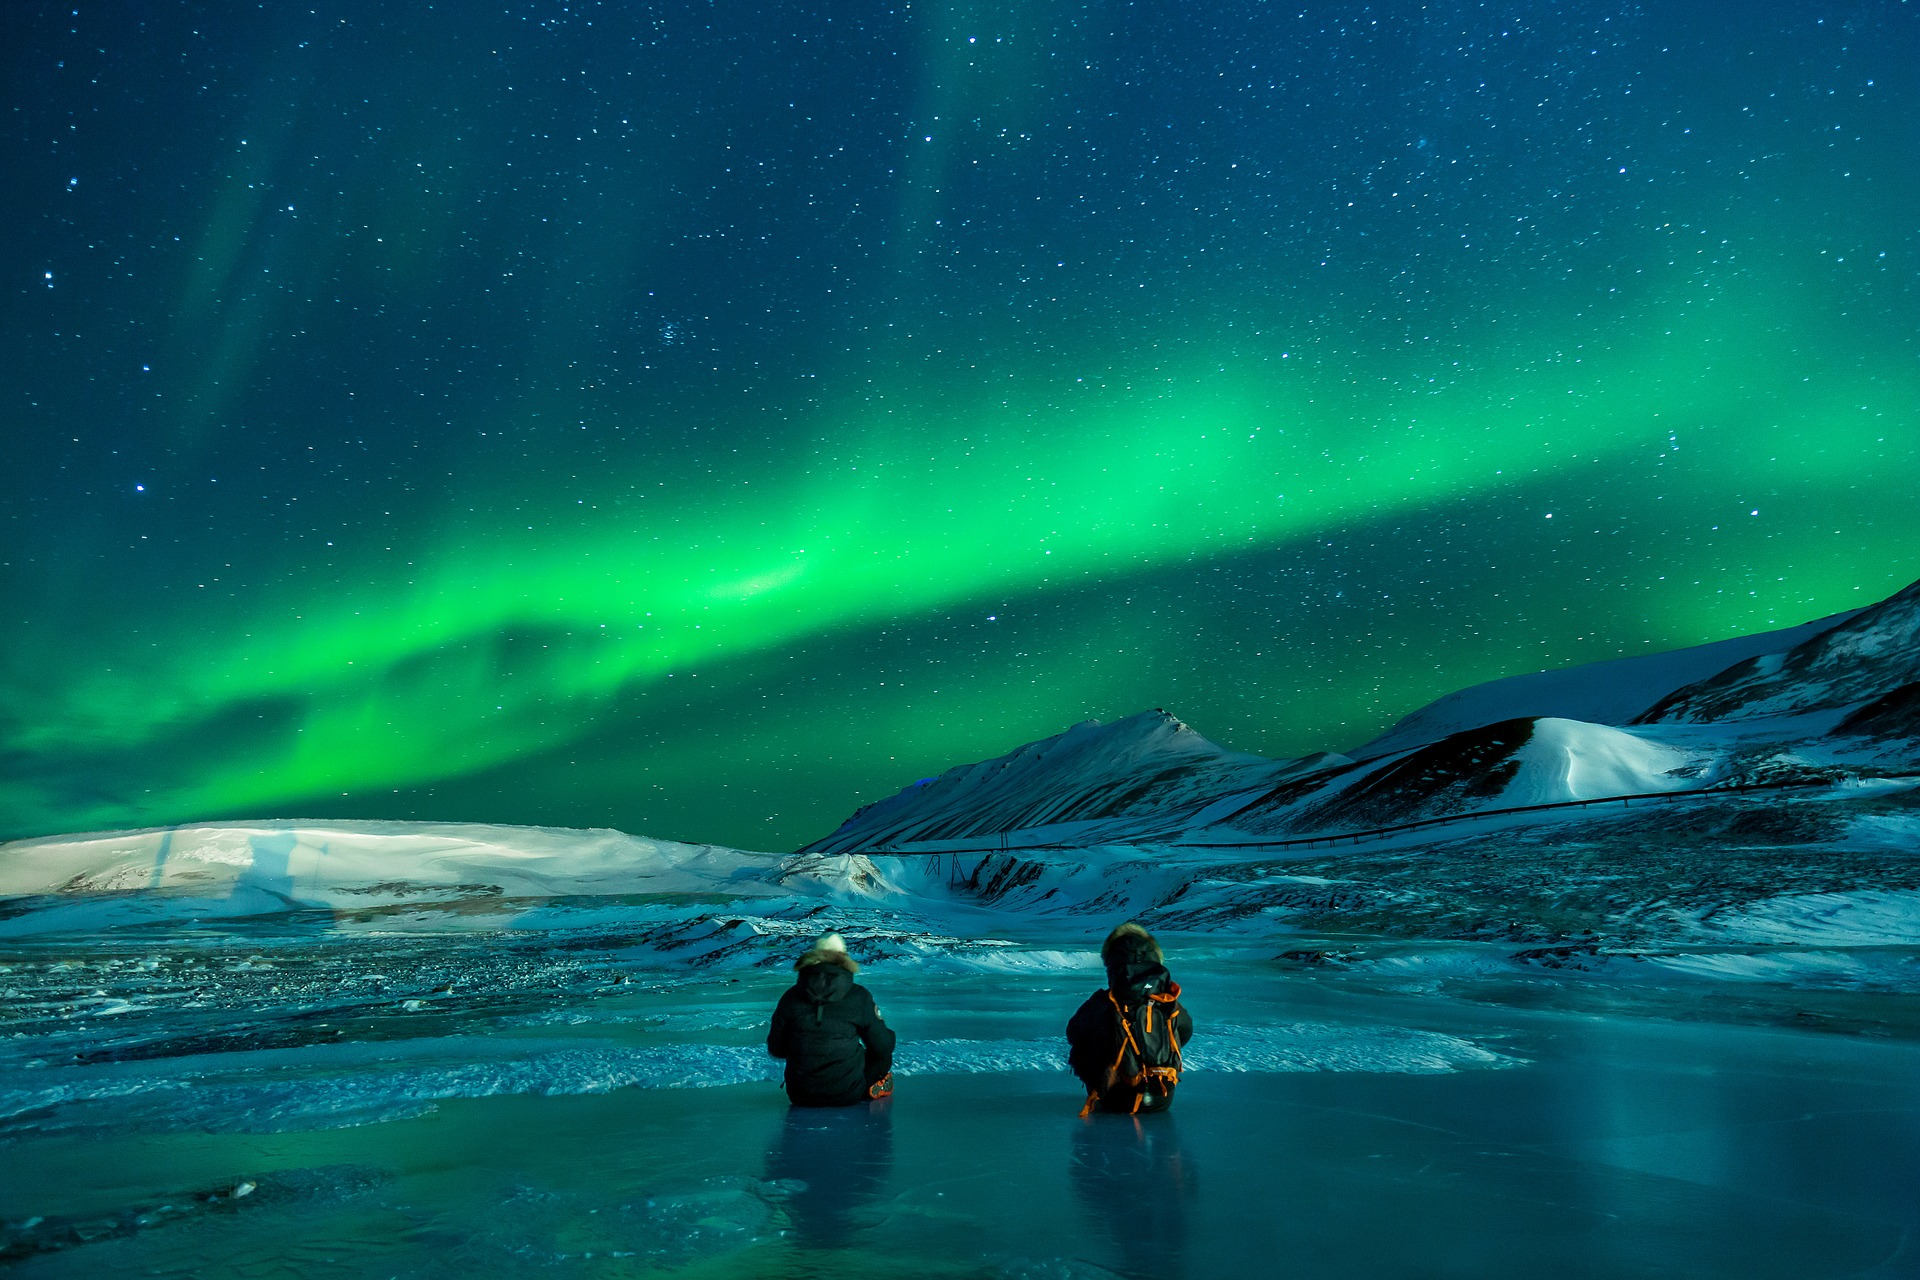 The amazing aurora borealis or northern lights in Alaska. Discover 10 places to go in winter in the US #usa #usawinter #winterusa